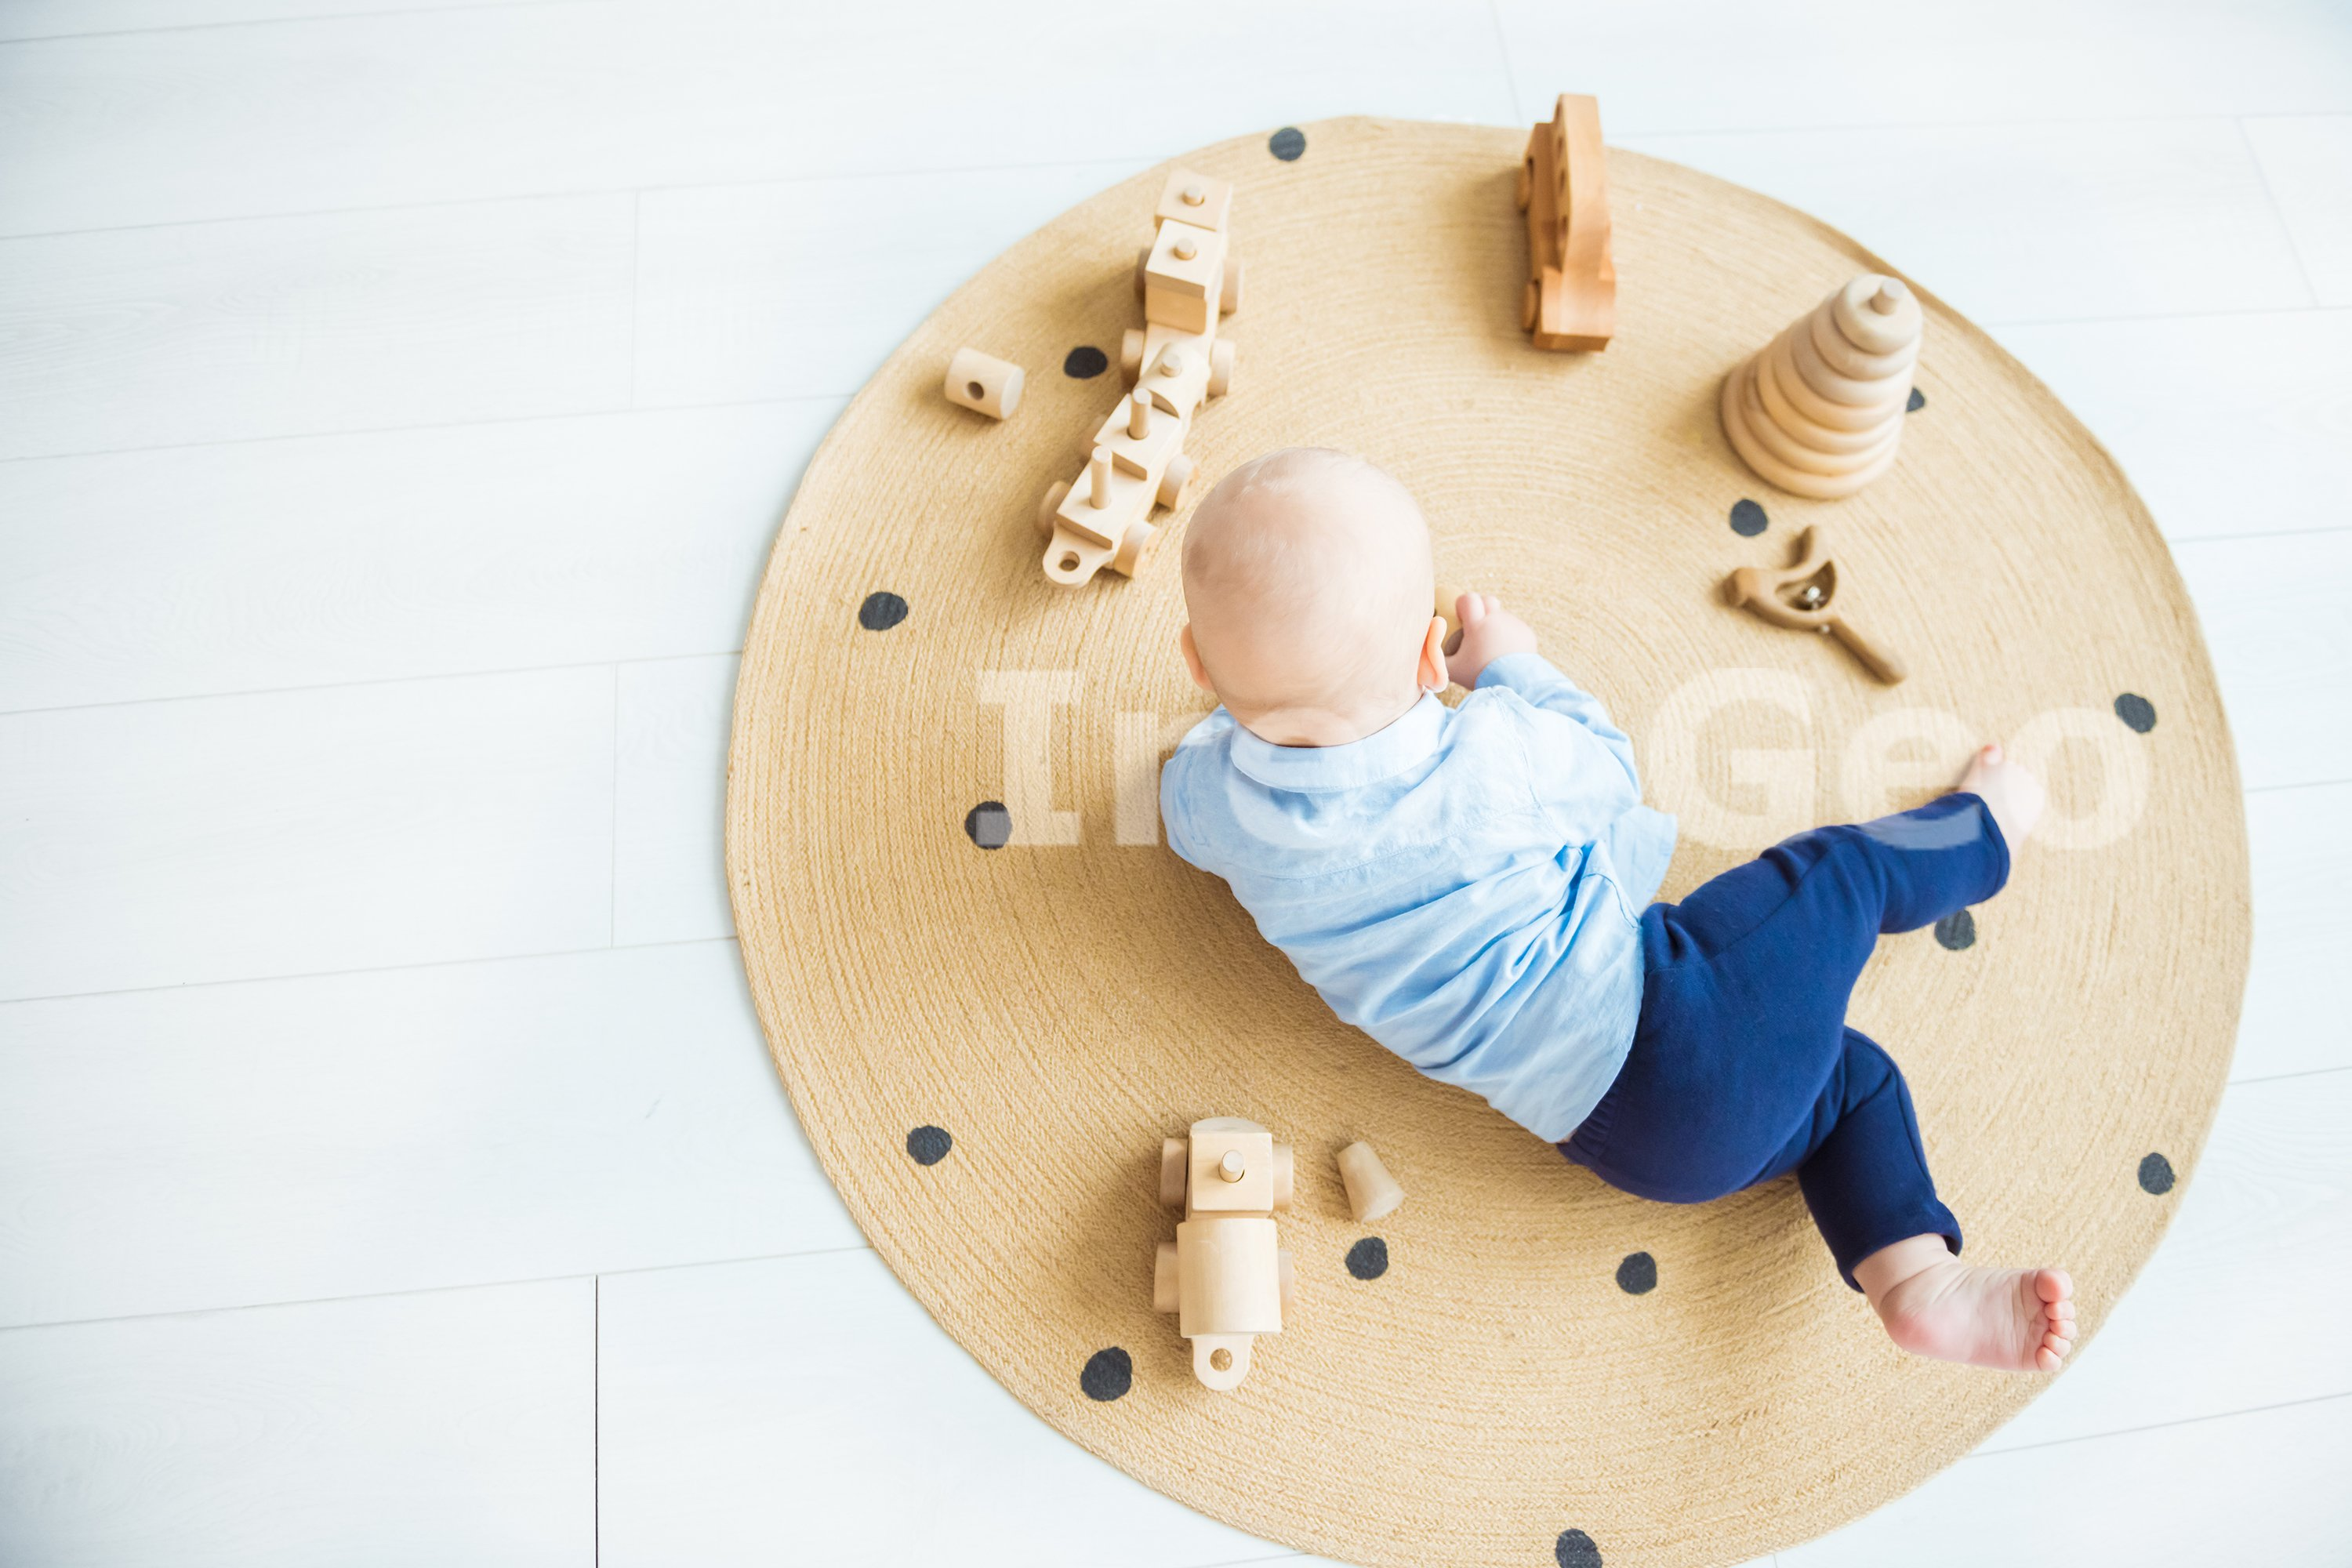 Baby boy playing with wooden toys lying on the Mat example image 1